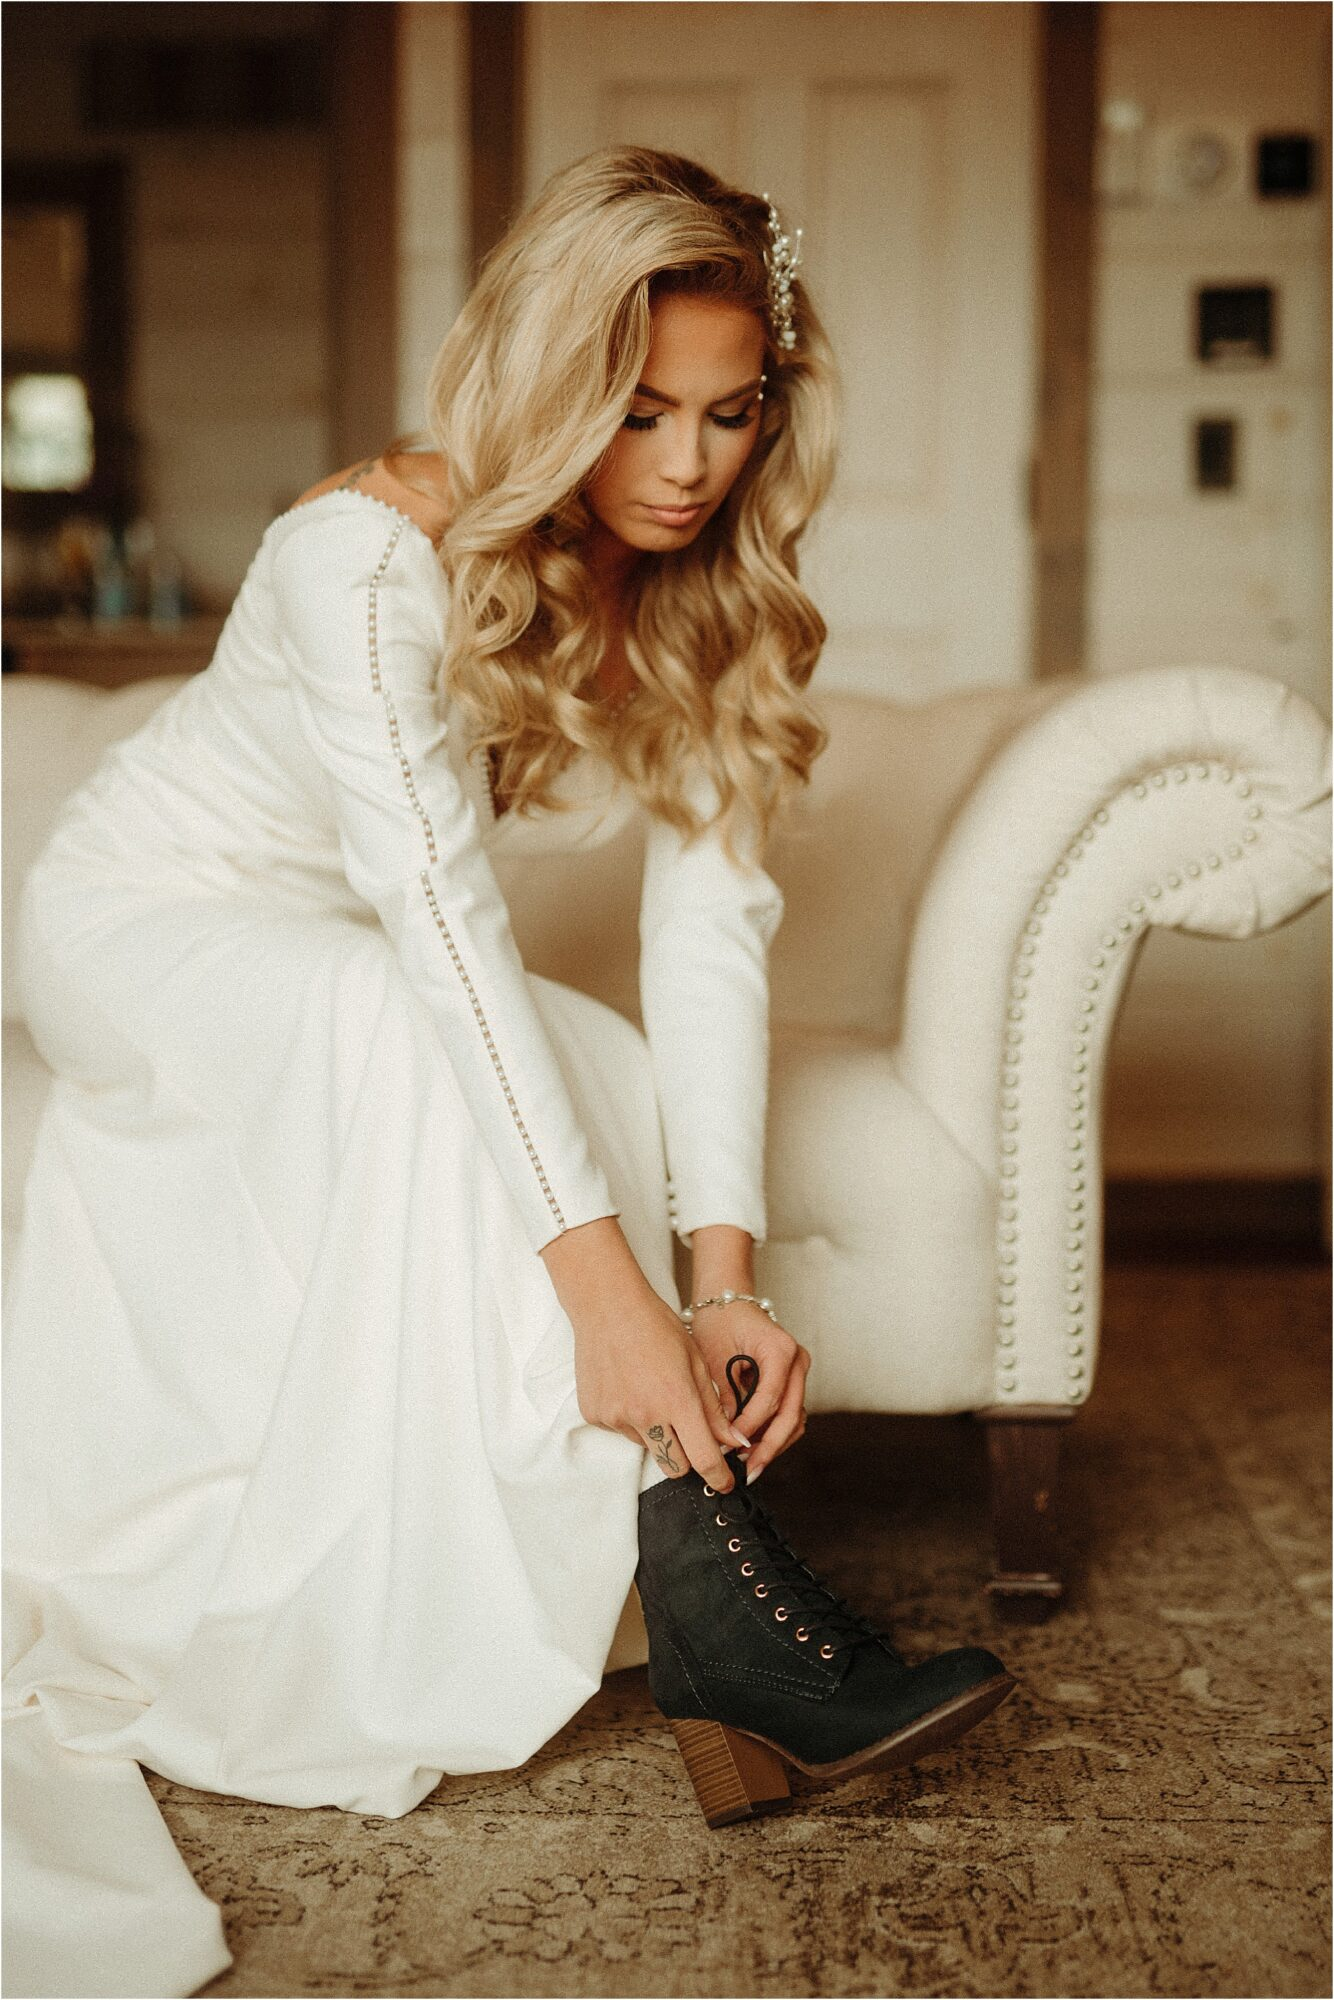 bride in edgy dress putting on black wedding boots